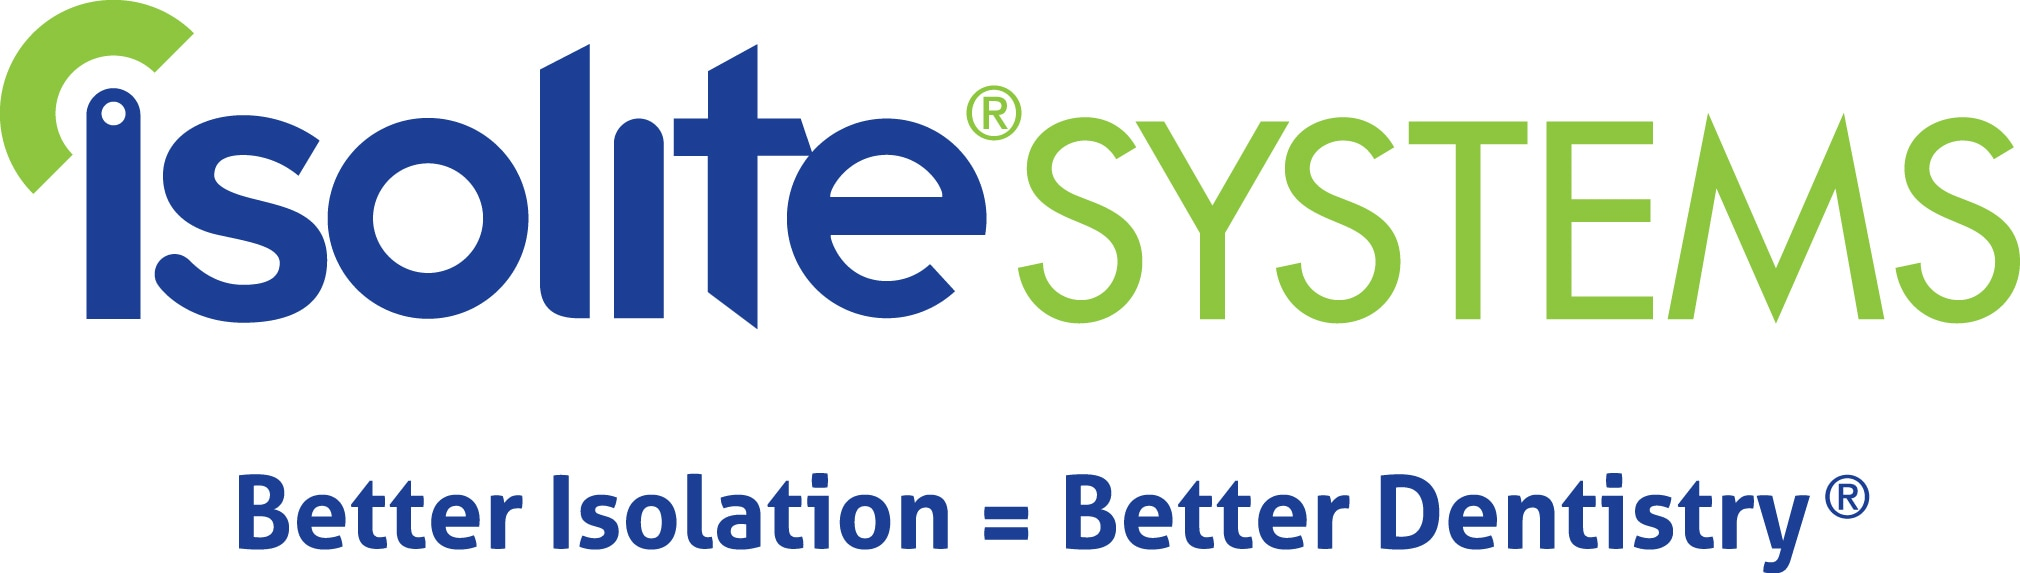 Isolite System - Better Isolation = Better Dentistry